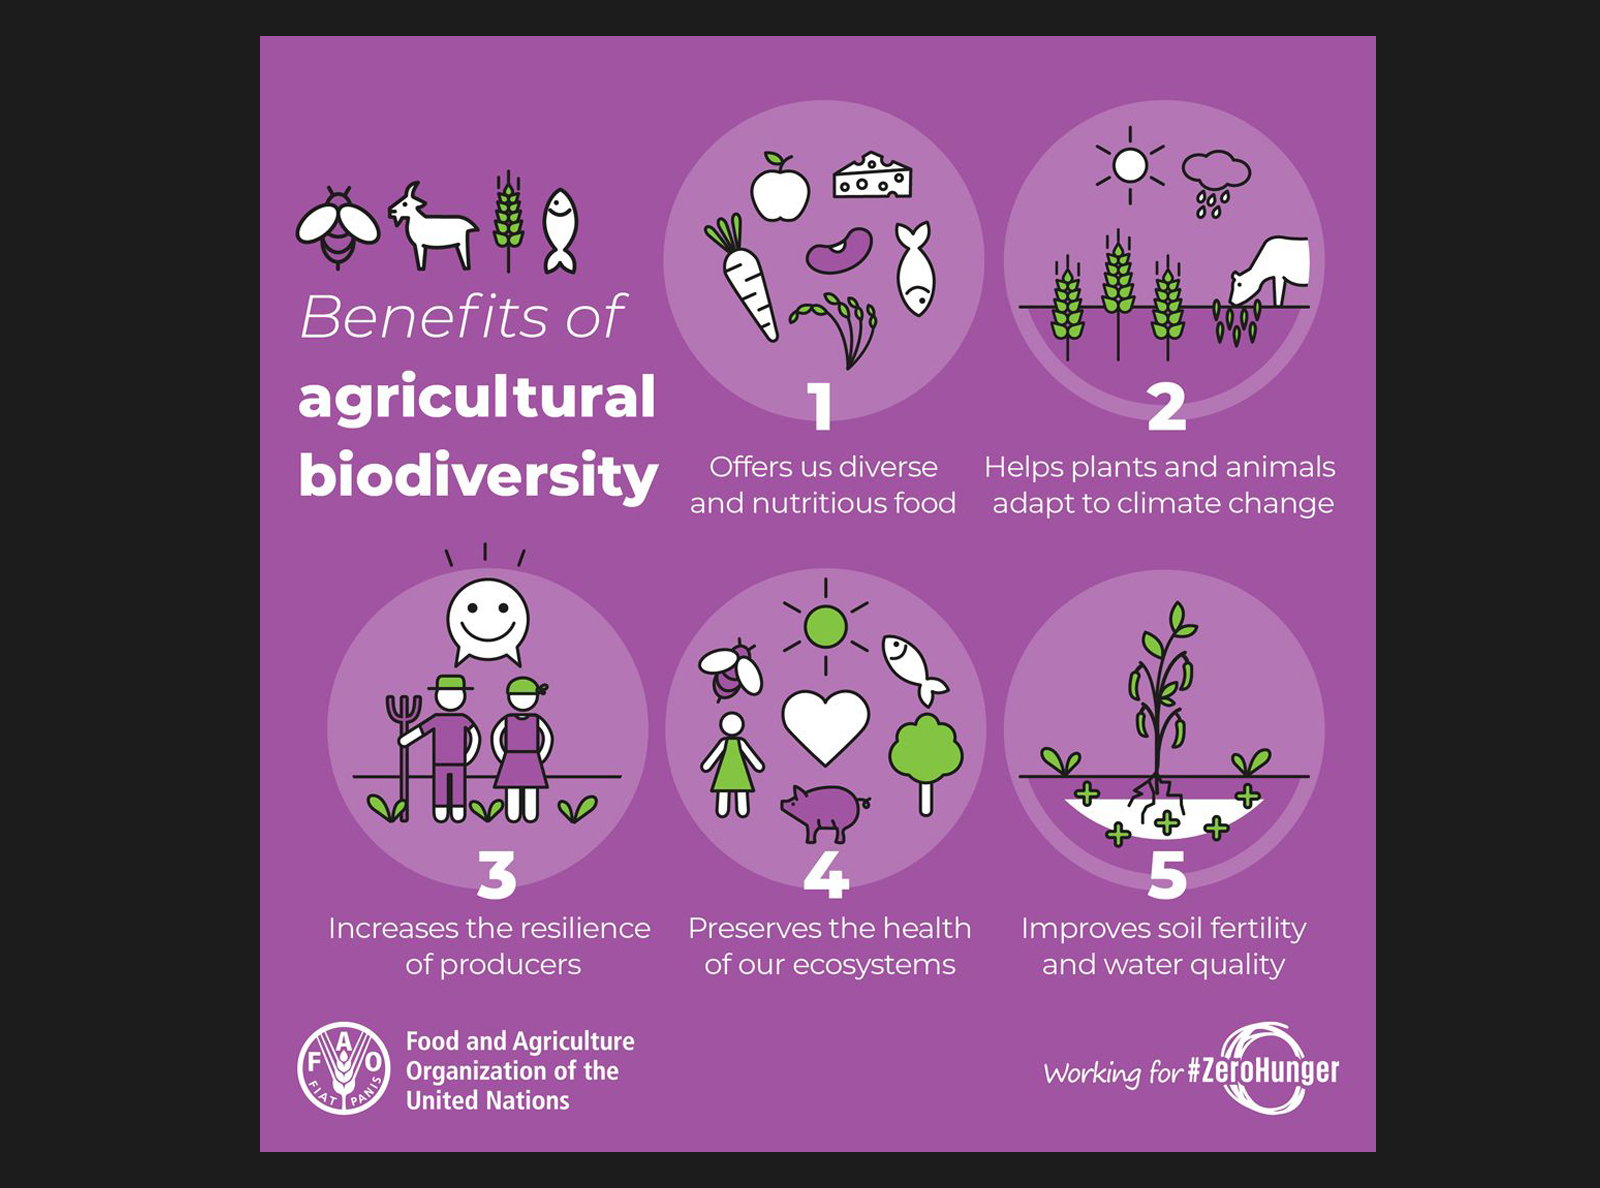 Benefits of agricultural biodiversity